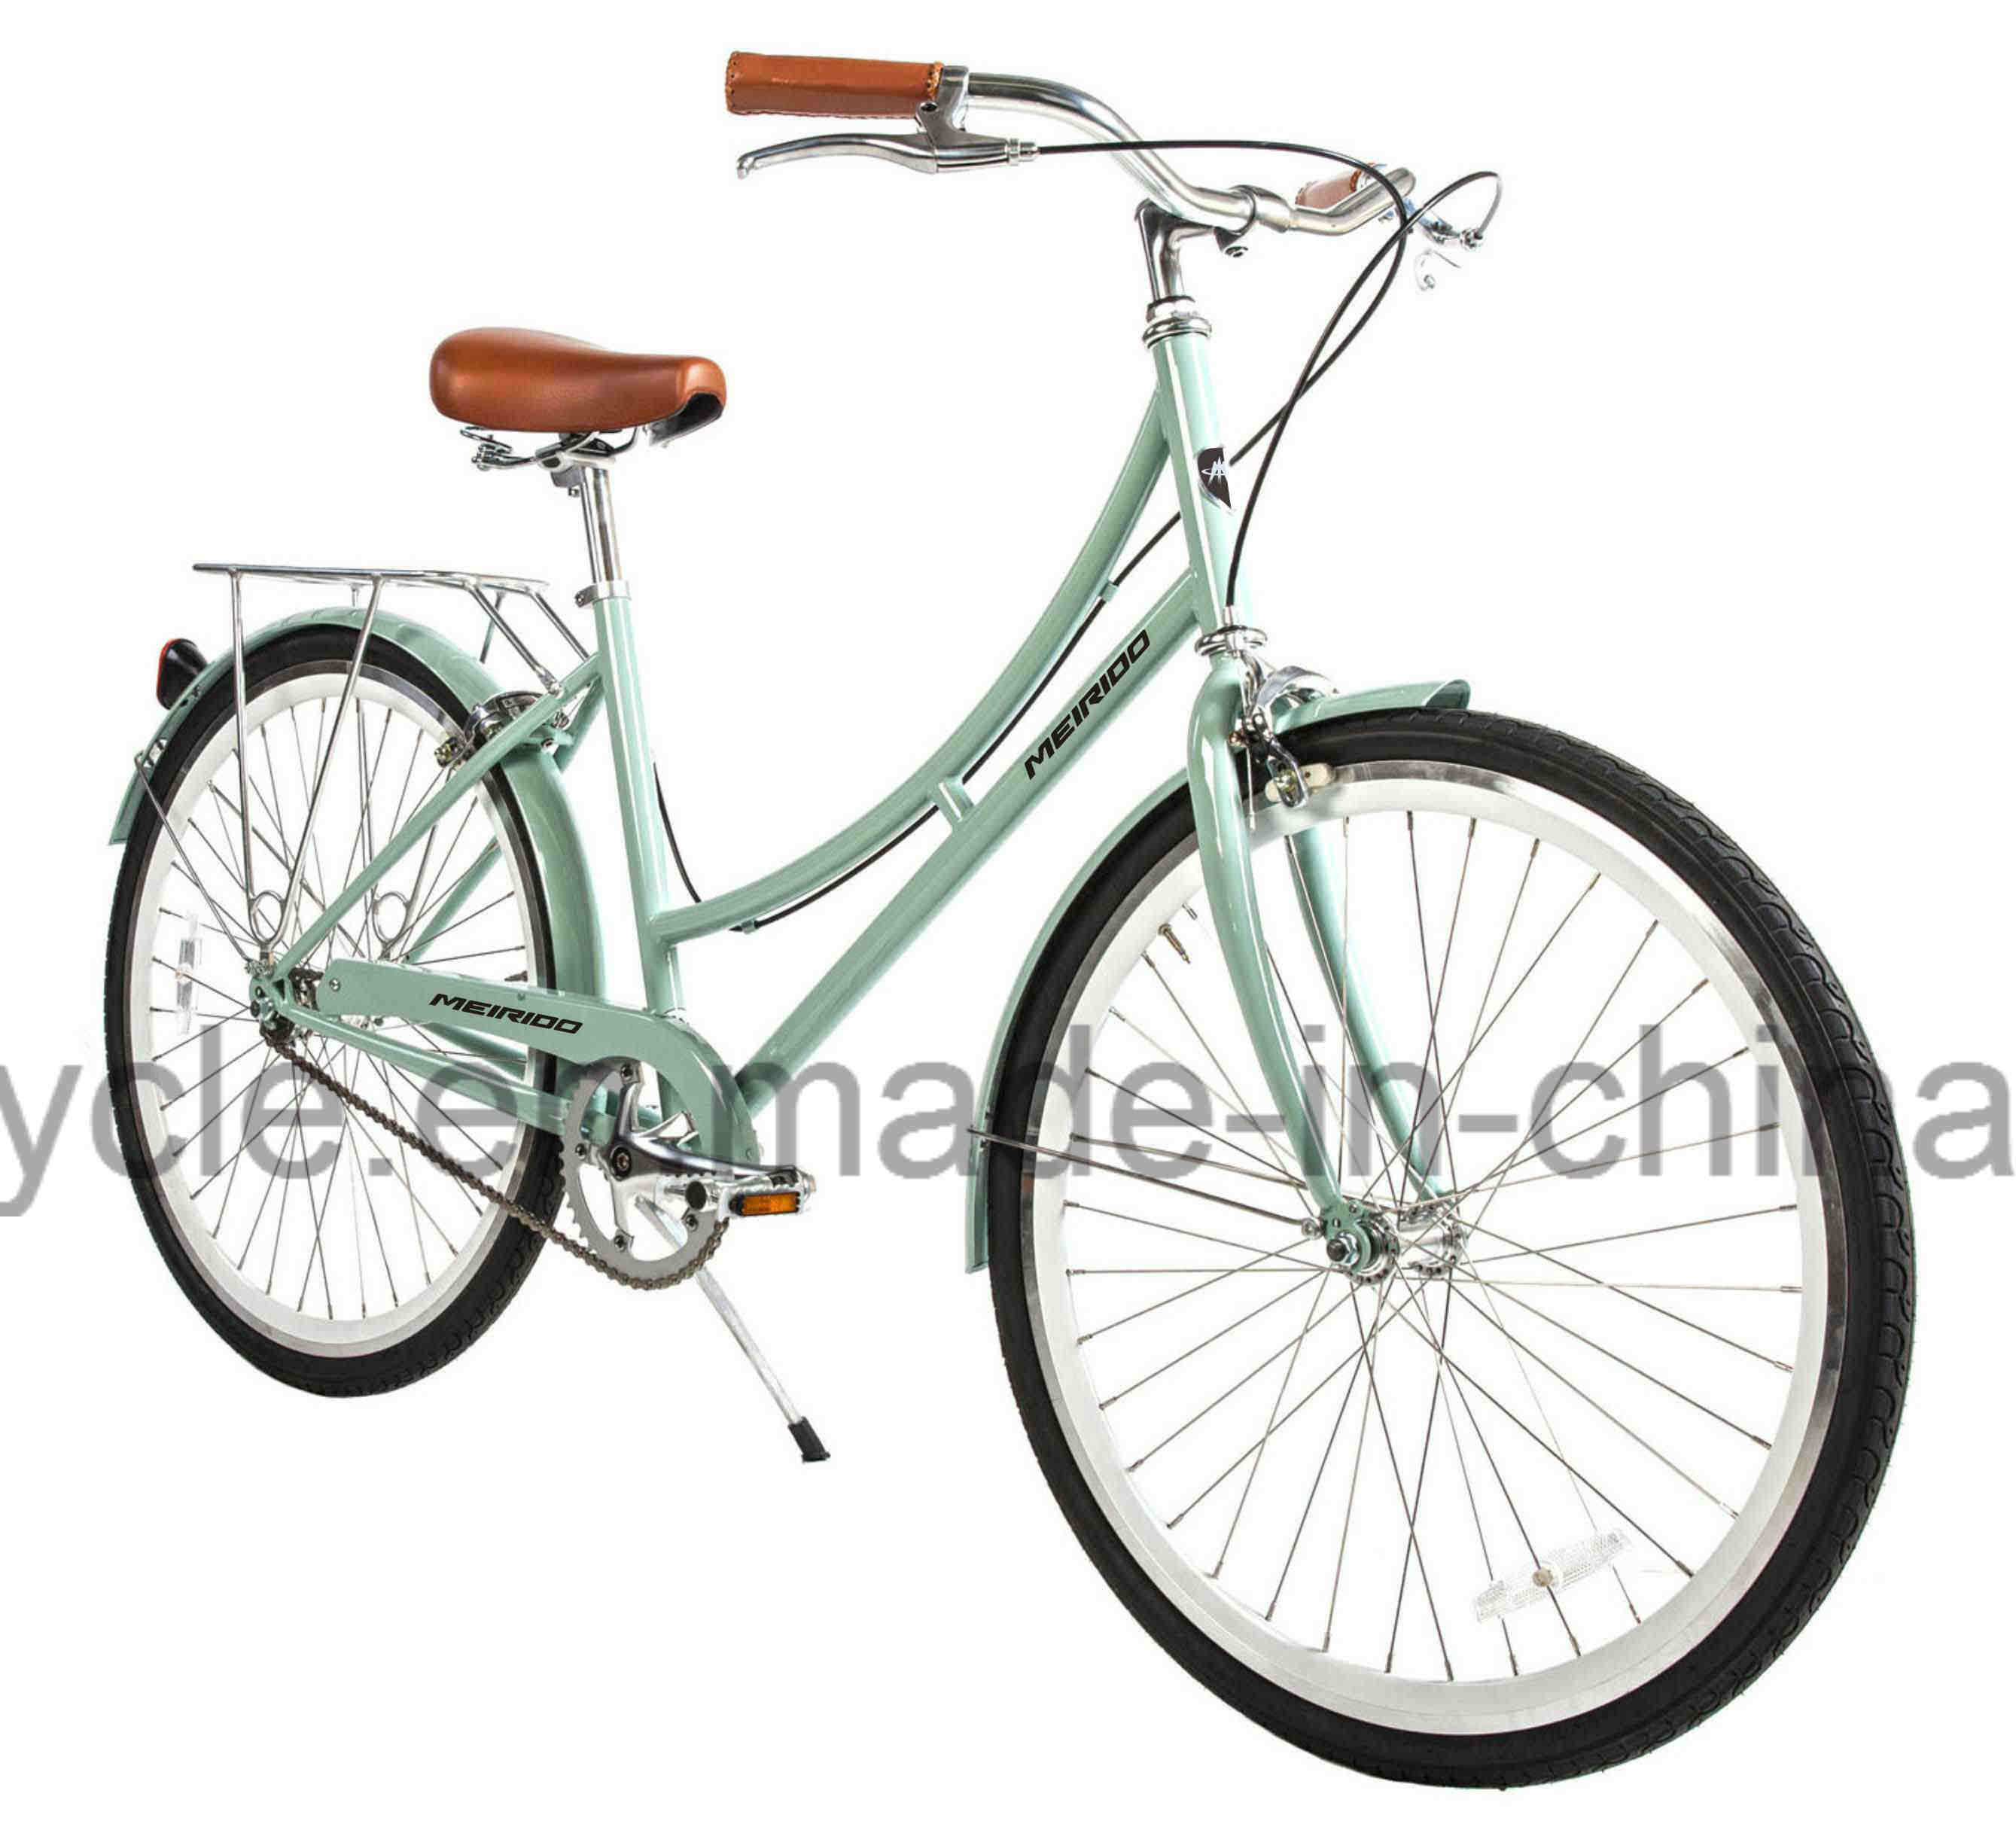 700c Single Speed Retro Holland Dutch Bike Laides Dutch City Bike Netherlands Dutch Bikes/City Bike